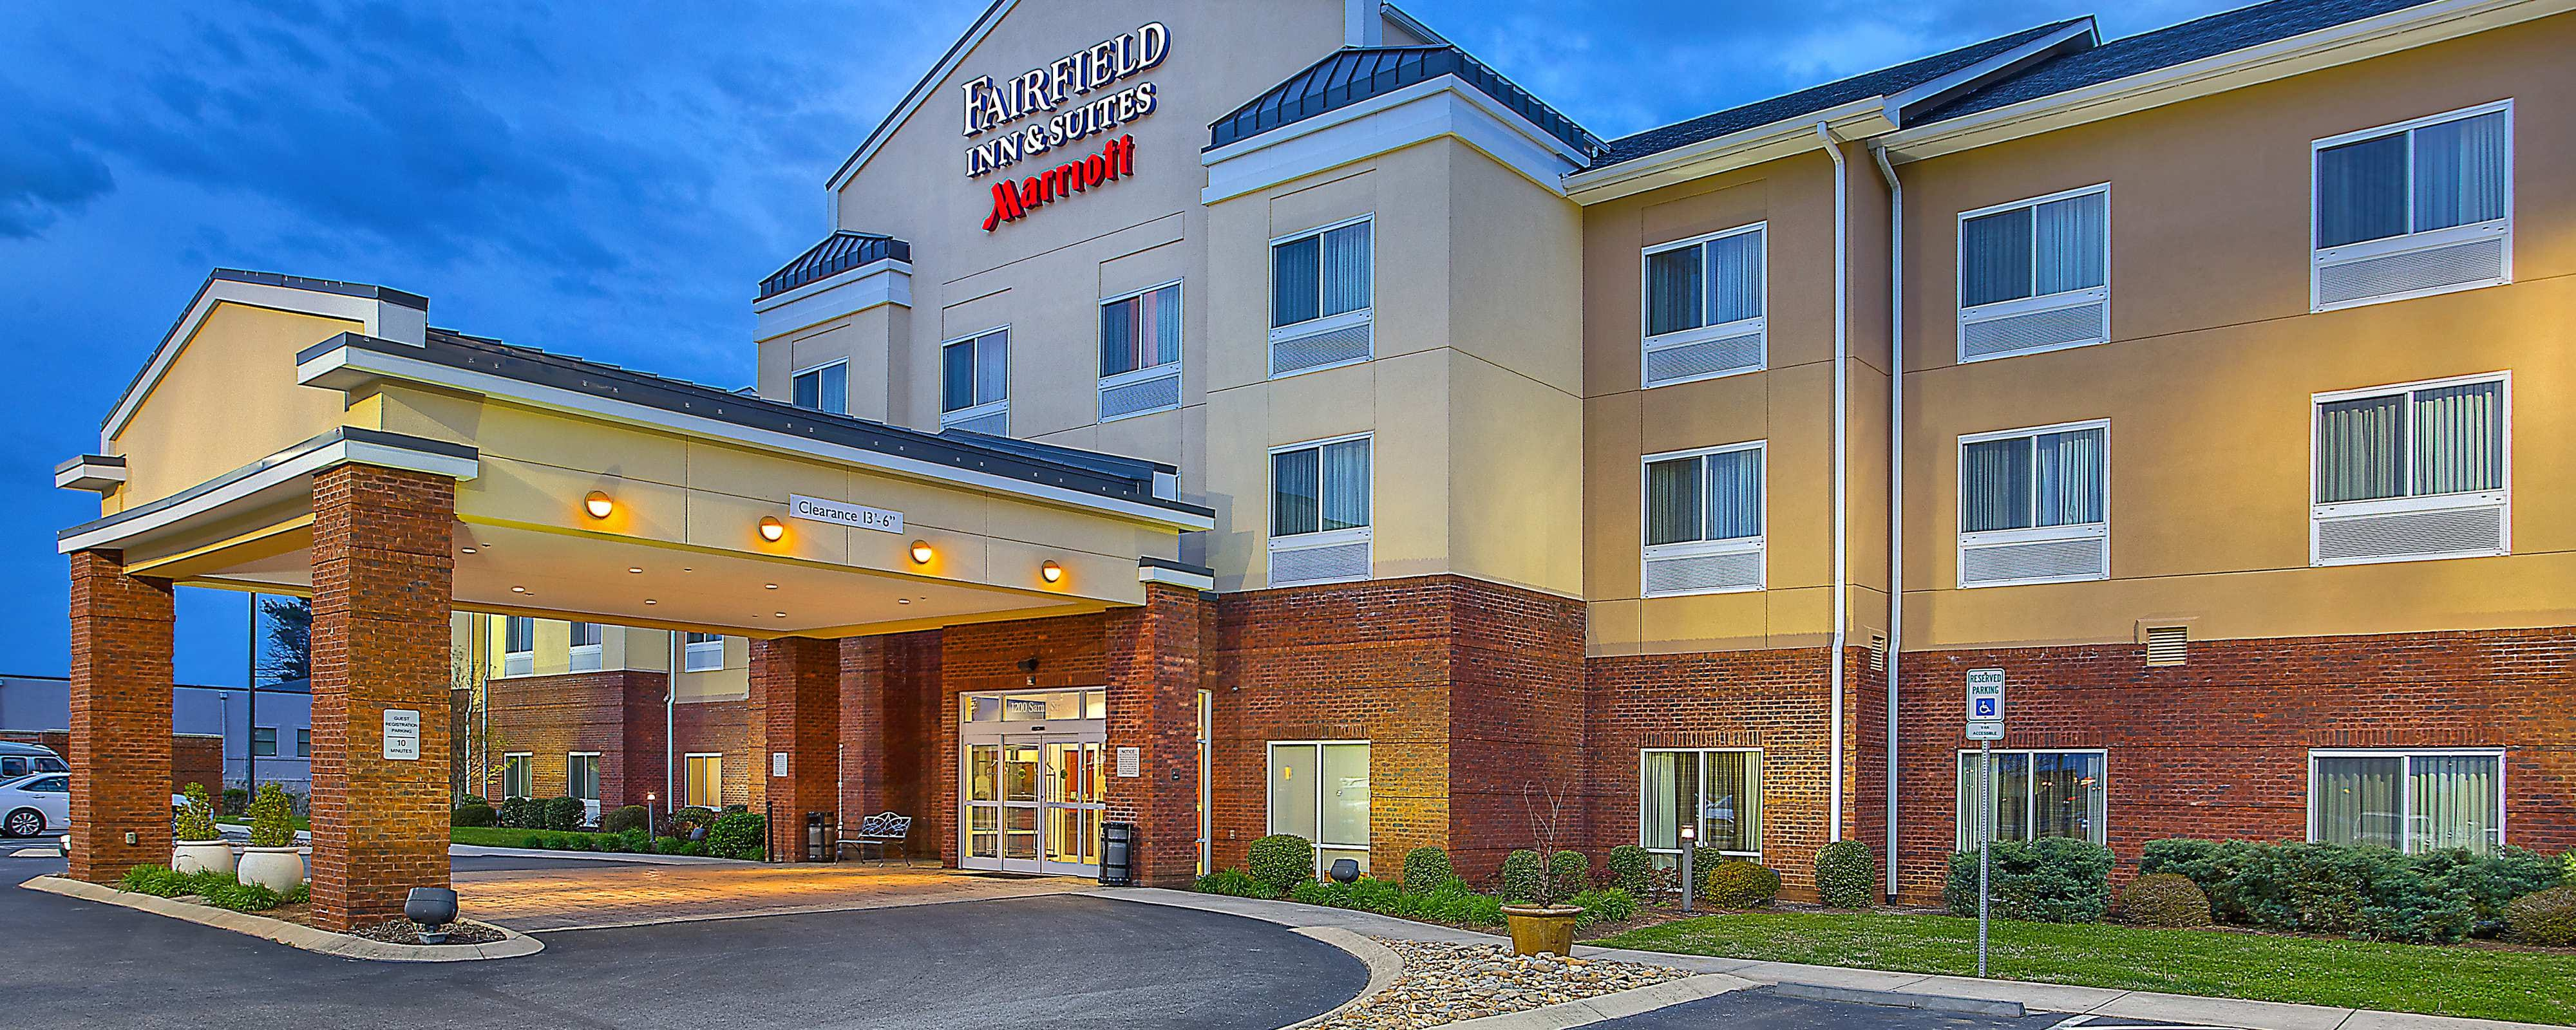 Hotels In Cookeville Tn Near I